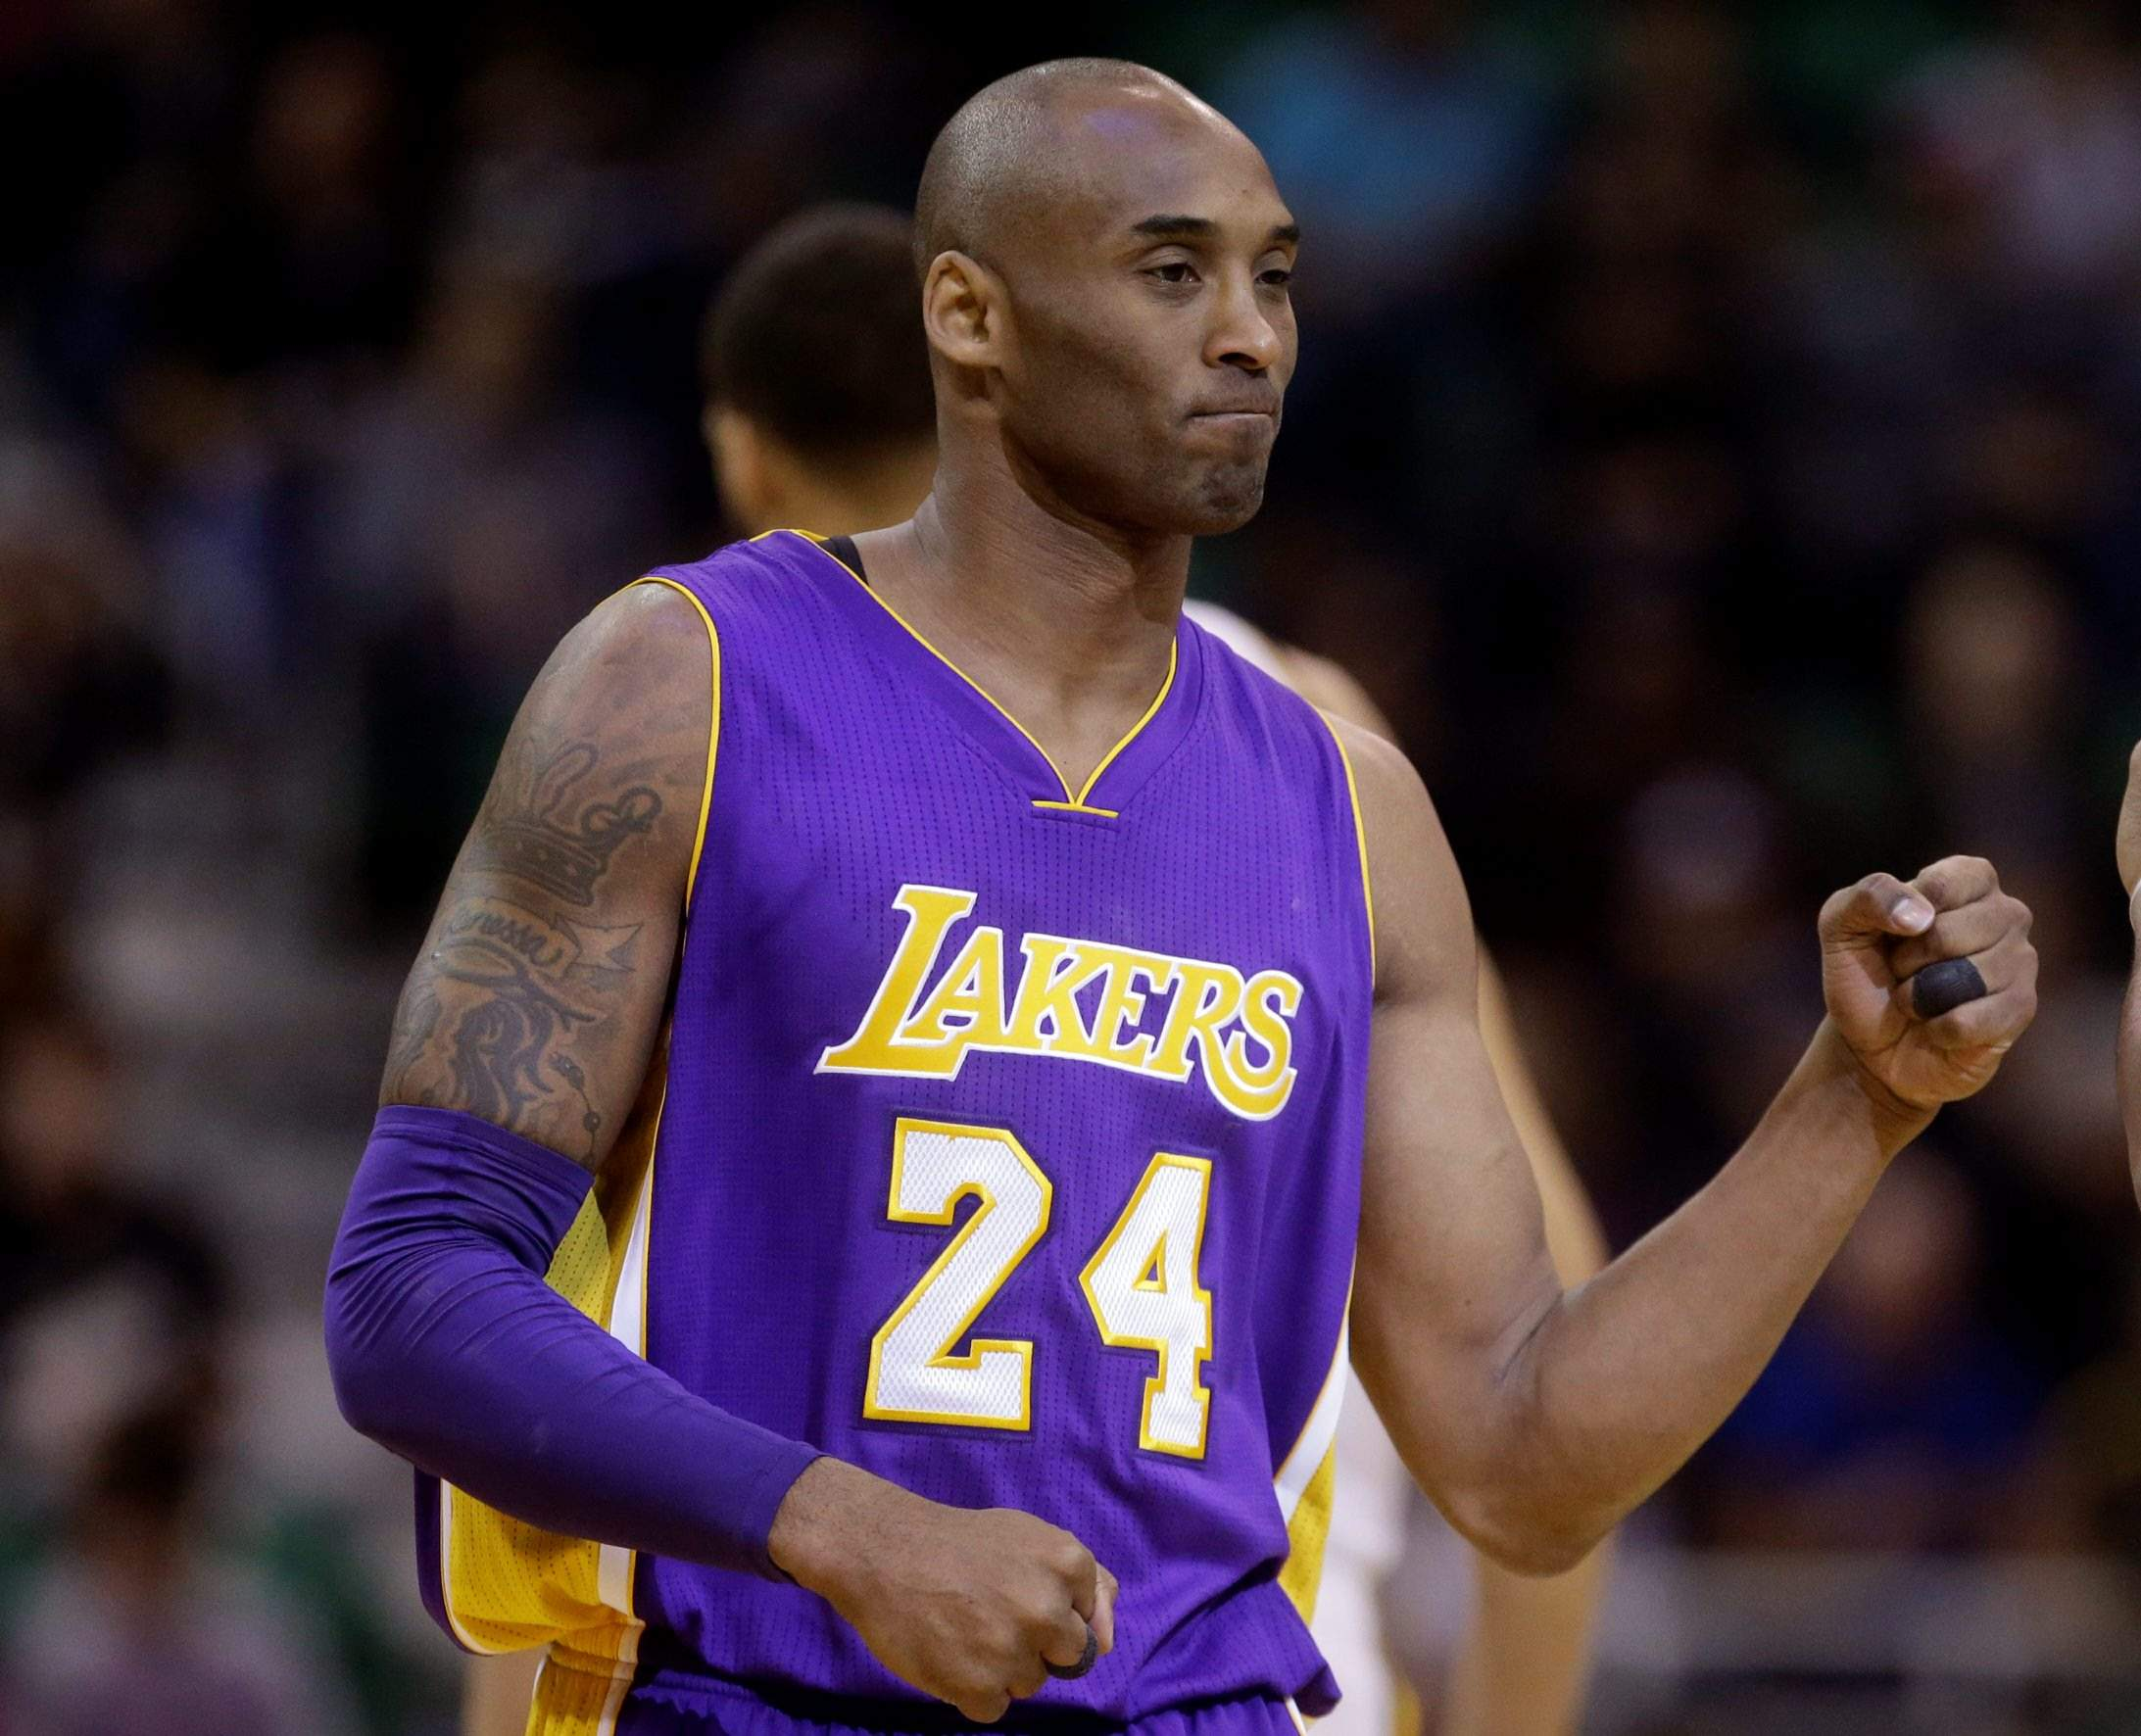 d2a15fbc912 Lakers to retire Kobe Bryant s 2 jersey numbers in December